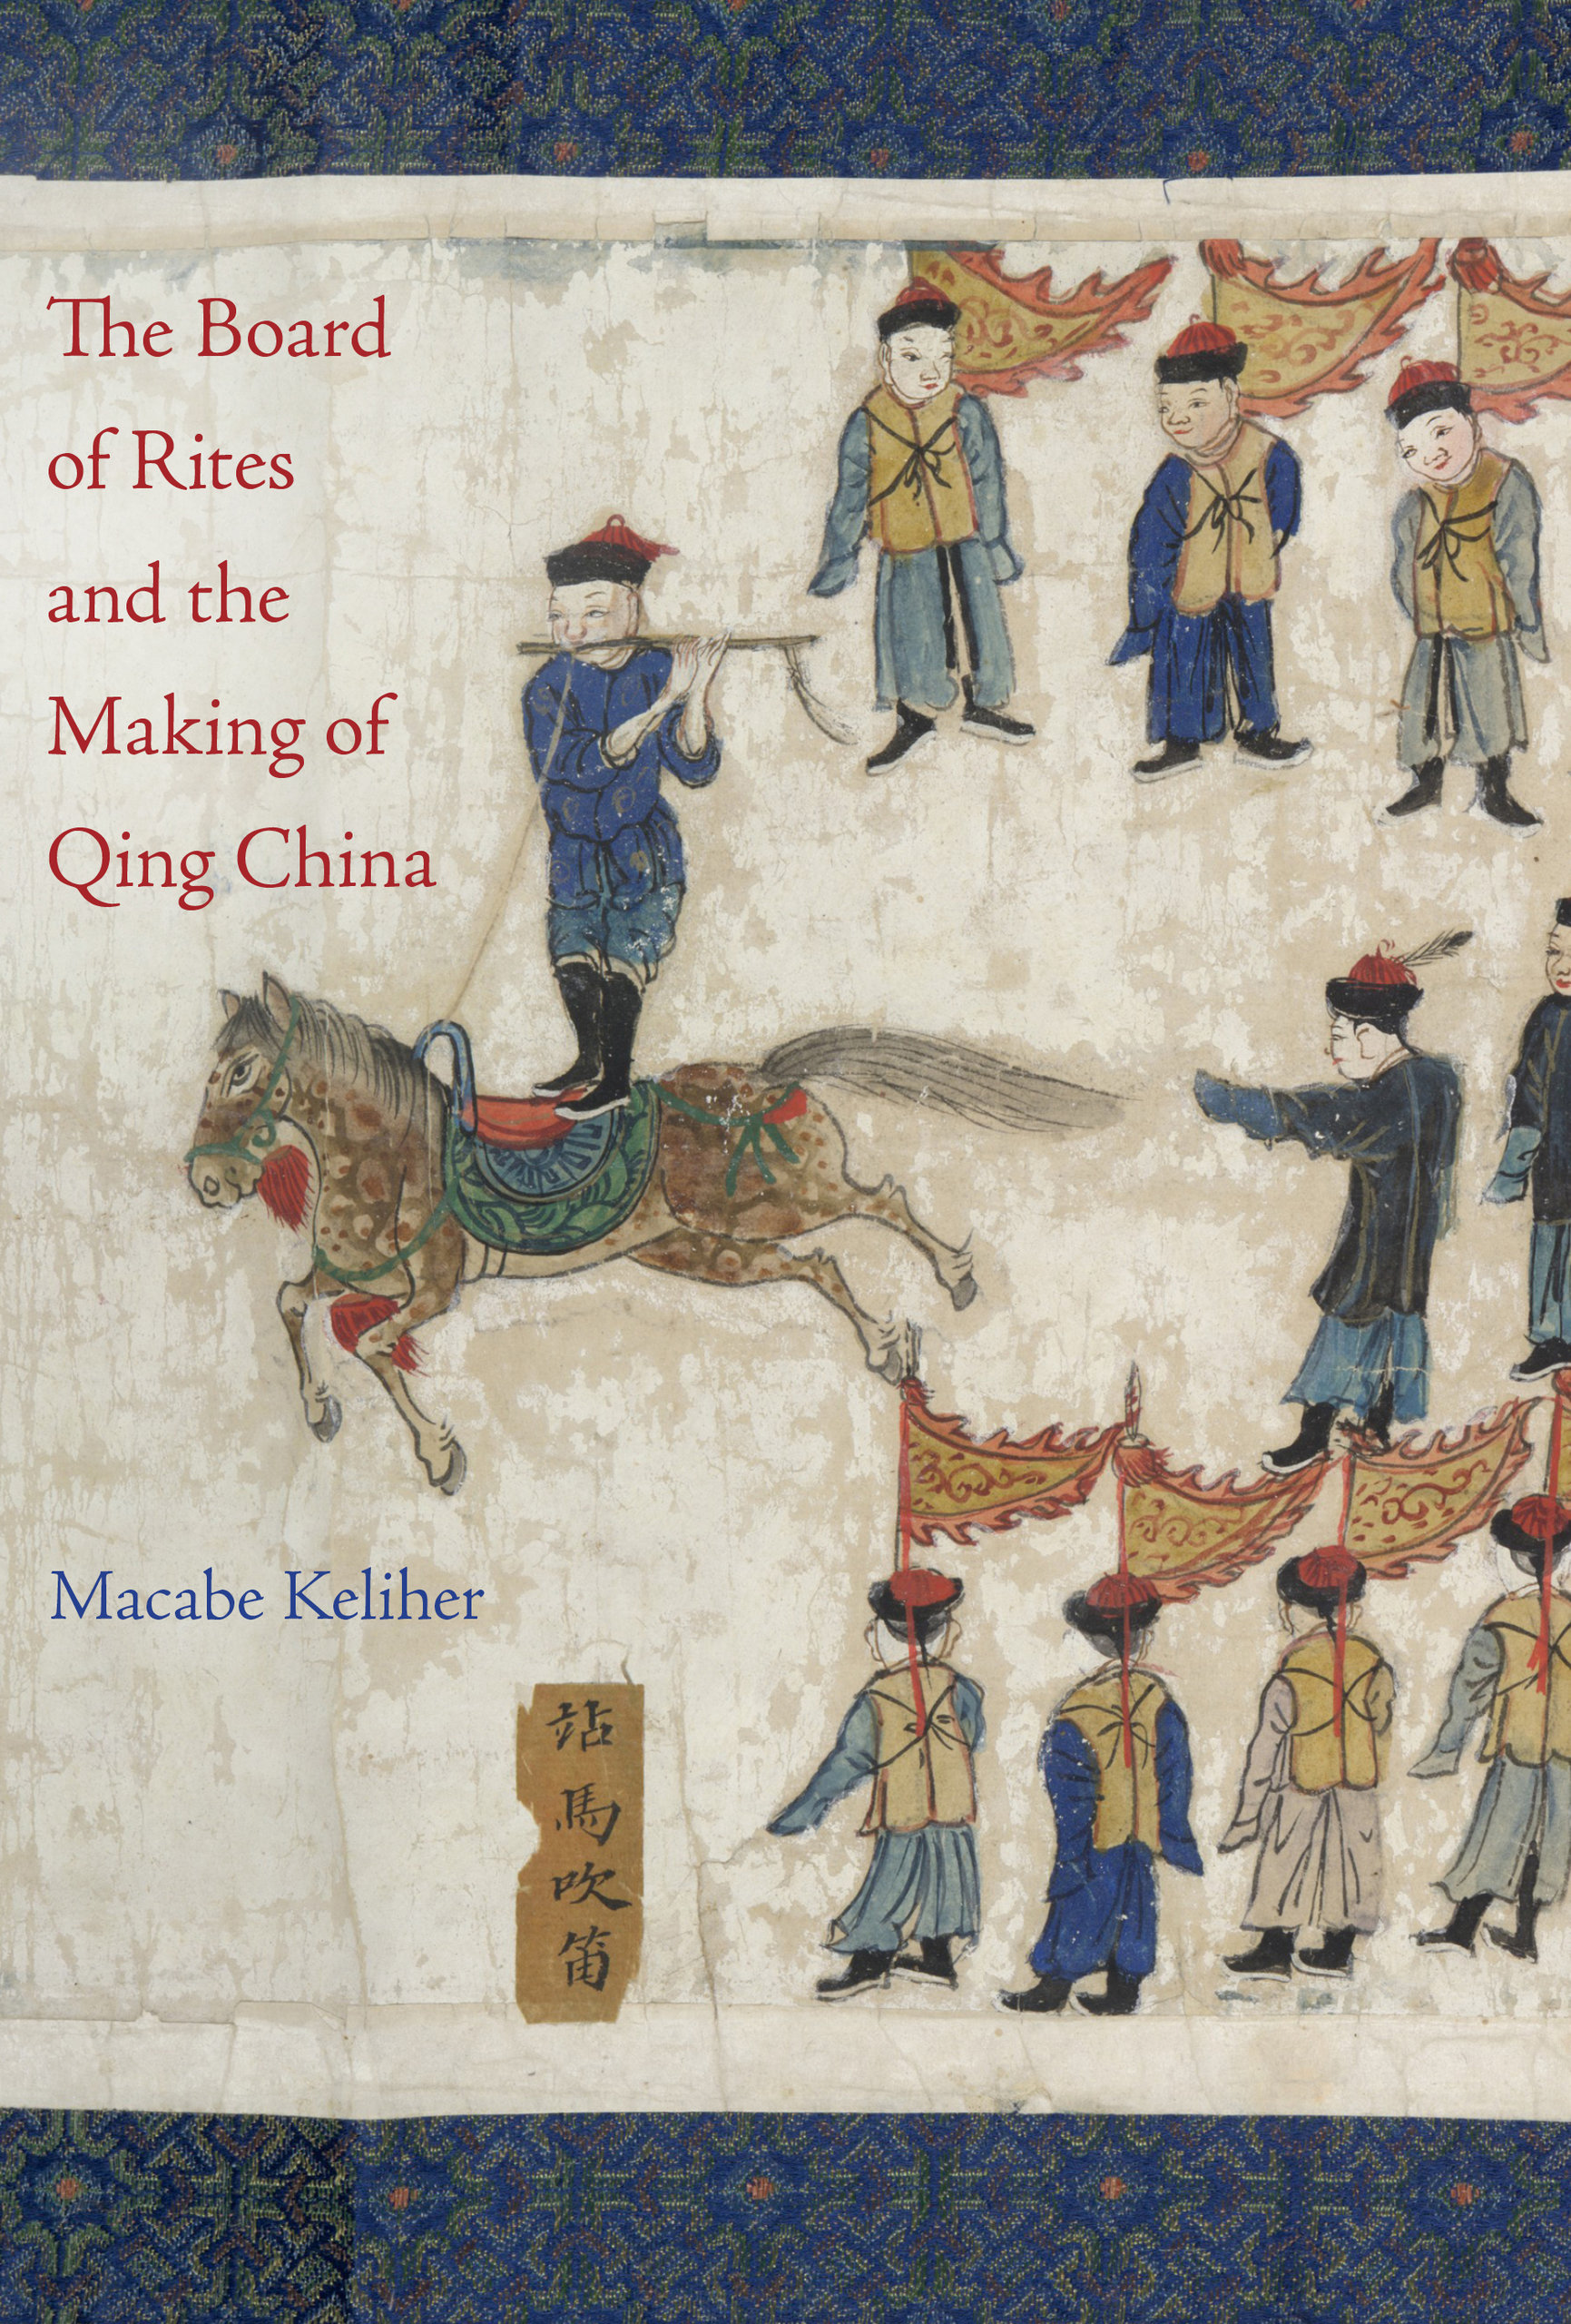 Cover | Macabe Keliher: The Board of Rites and the Making of Qing China (2019)